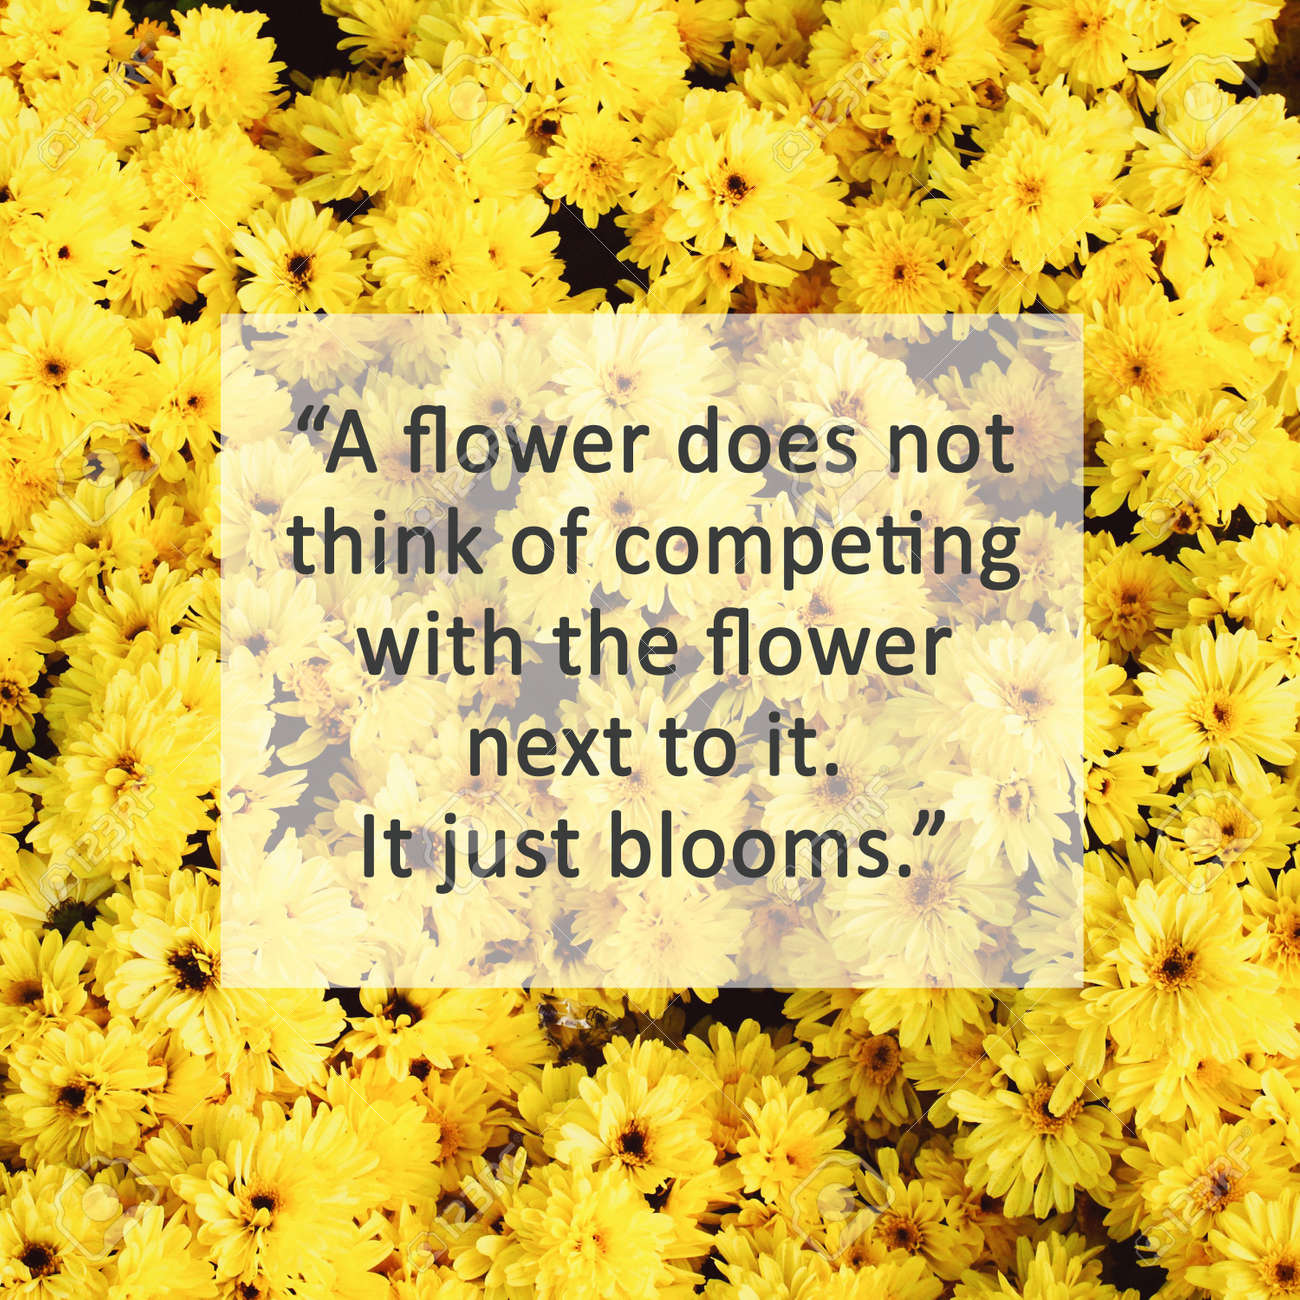 Inspirational Quote On Yellow Blossom Flowers With Retro Filter Stock Photo Picture And Royalty Free Image Image 39077413